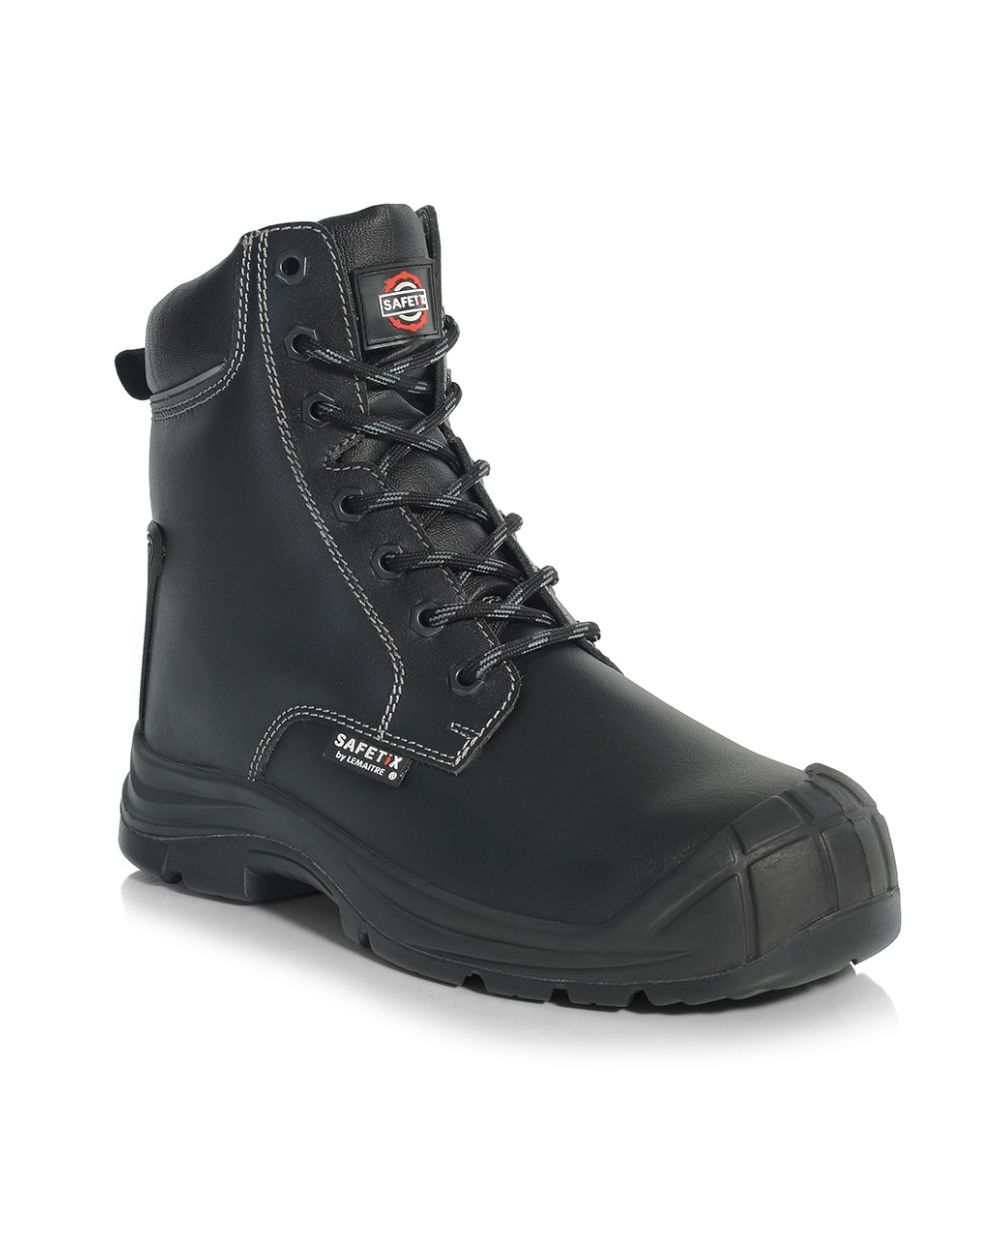 Columba - PU/Rubber Combat Boot c/w Cap + Zip